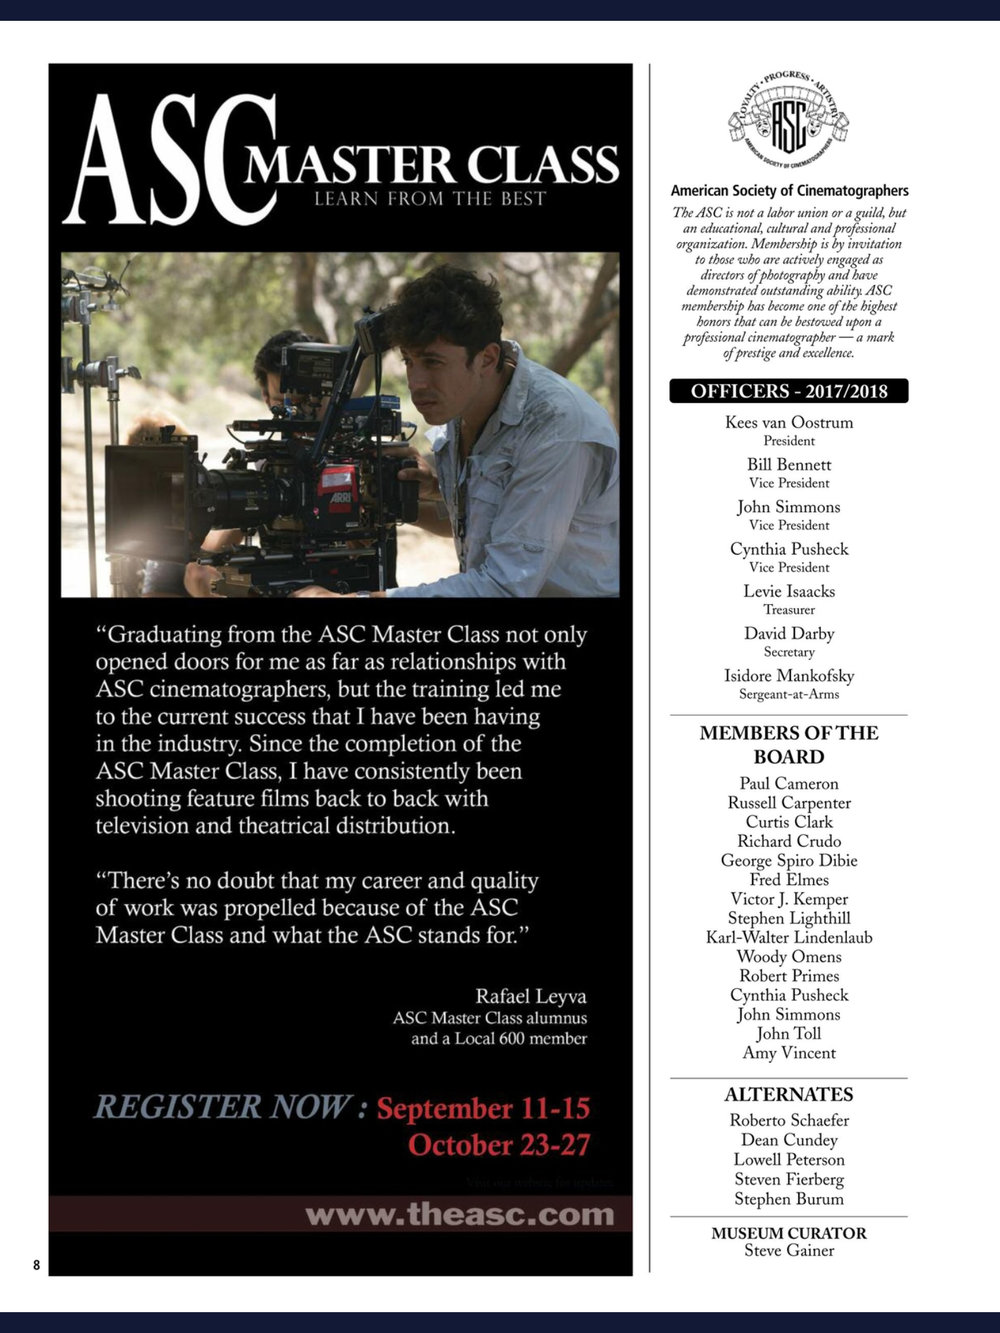 ASC MAGAZINE SEPTEMBER ISSUE 2017